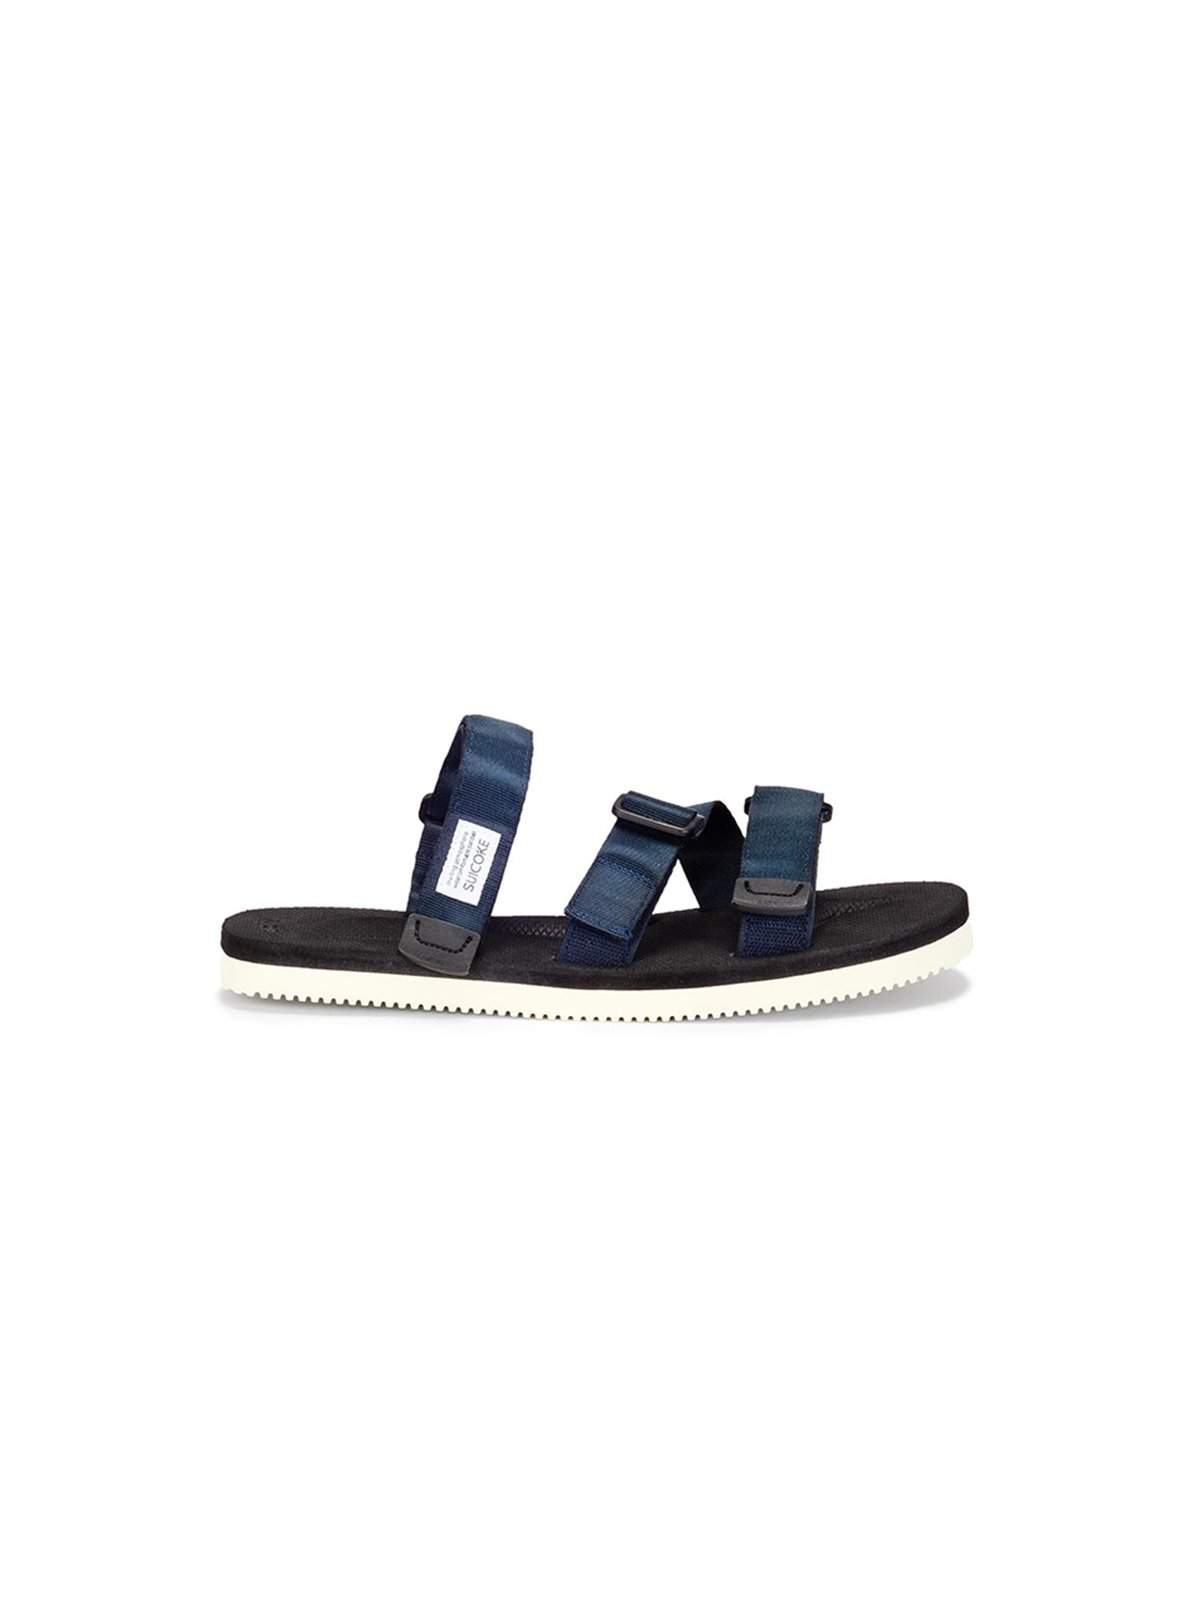 11573c627324 Suicoke JESSE-C Navy - MORE by Morello - Indonesia